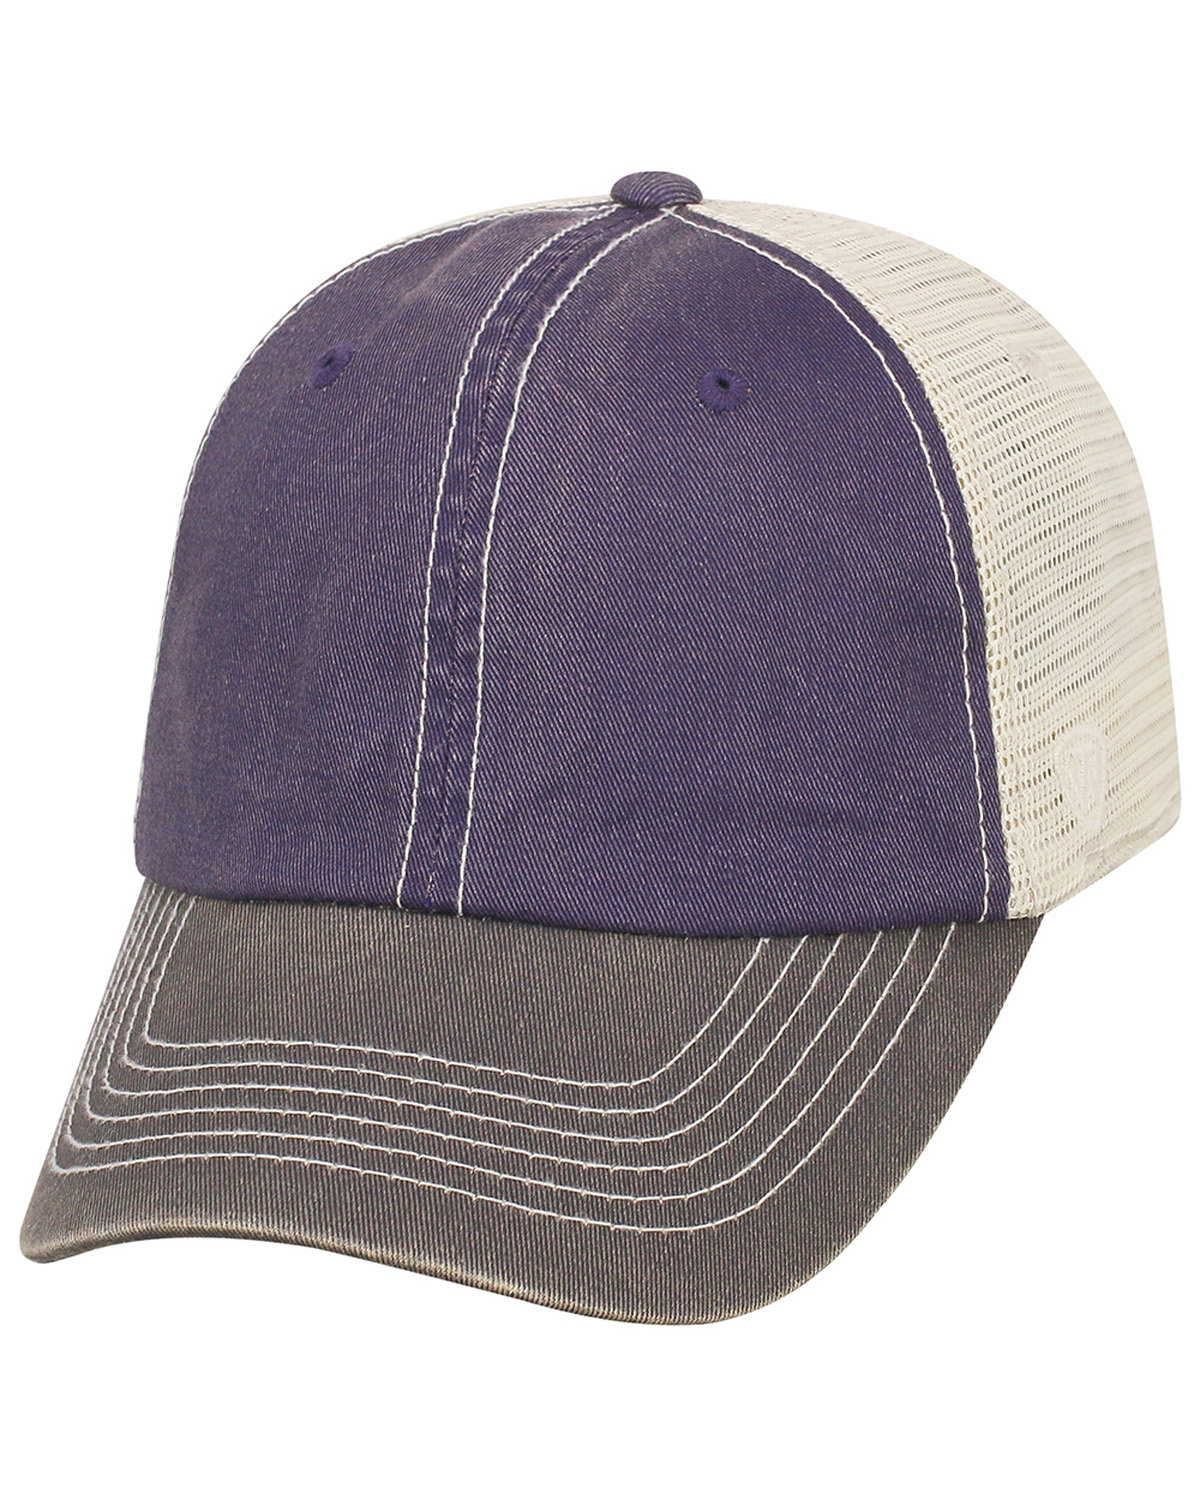 Top Of The World Adult Offroad Cap PURPLE